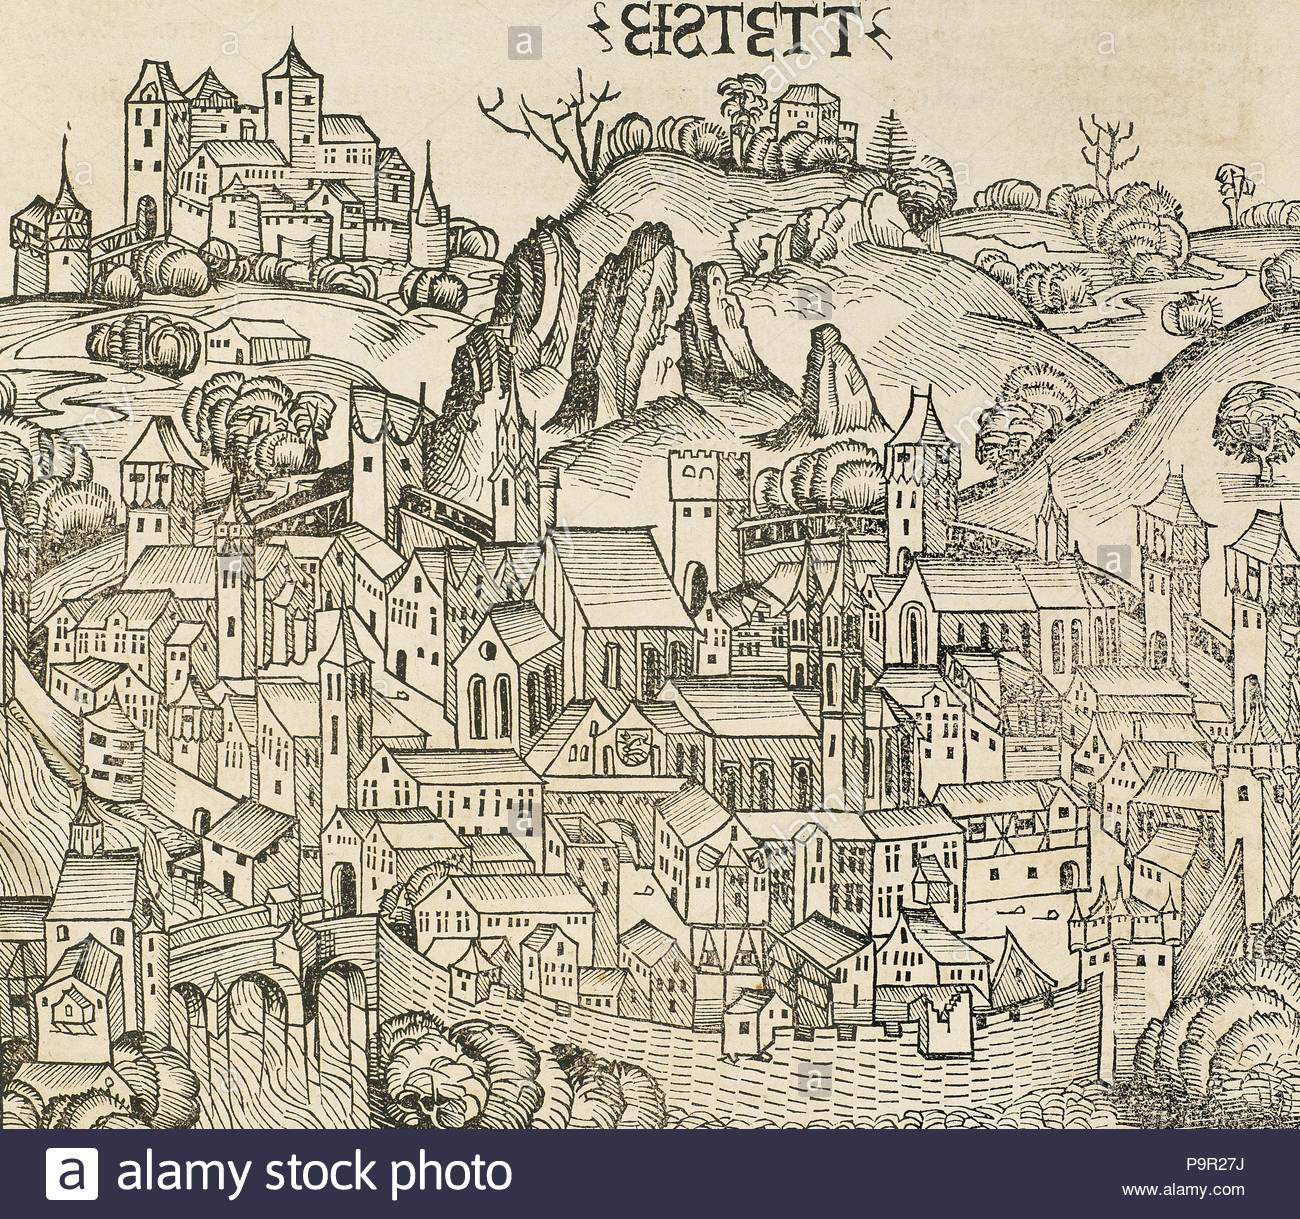 Germany. Eichstatt. Town in the federal state of Bavaria. It is located on the Altmuhl river. Engraving. 'Liber Chronicarum de Hartmann Schedel', 1493. - Stock Image